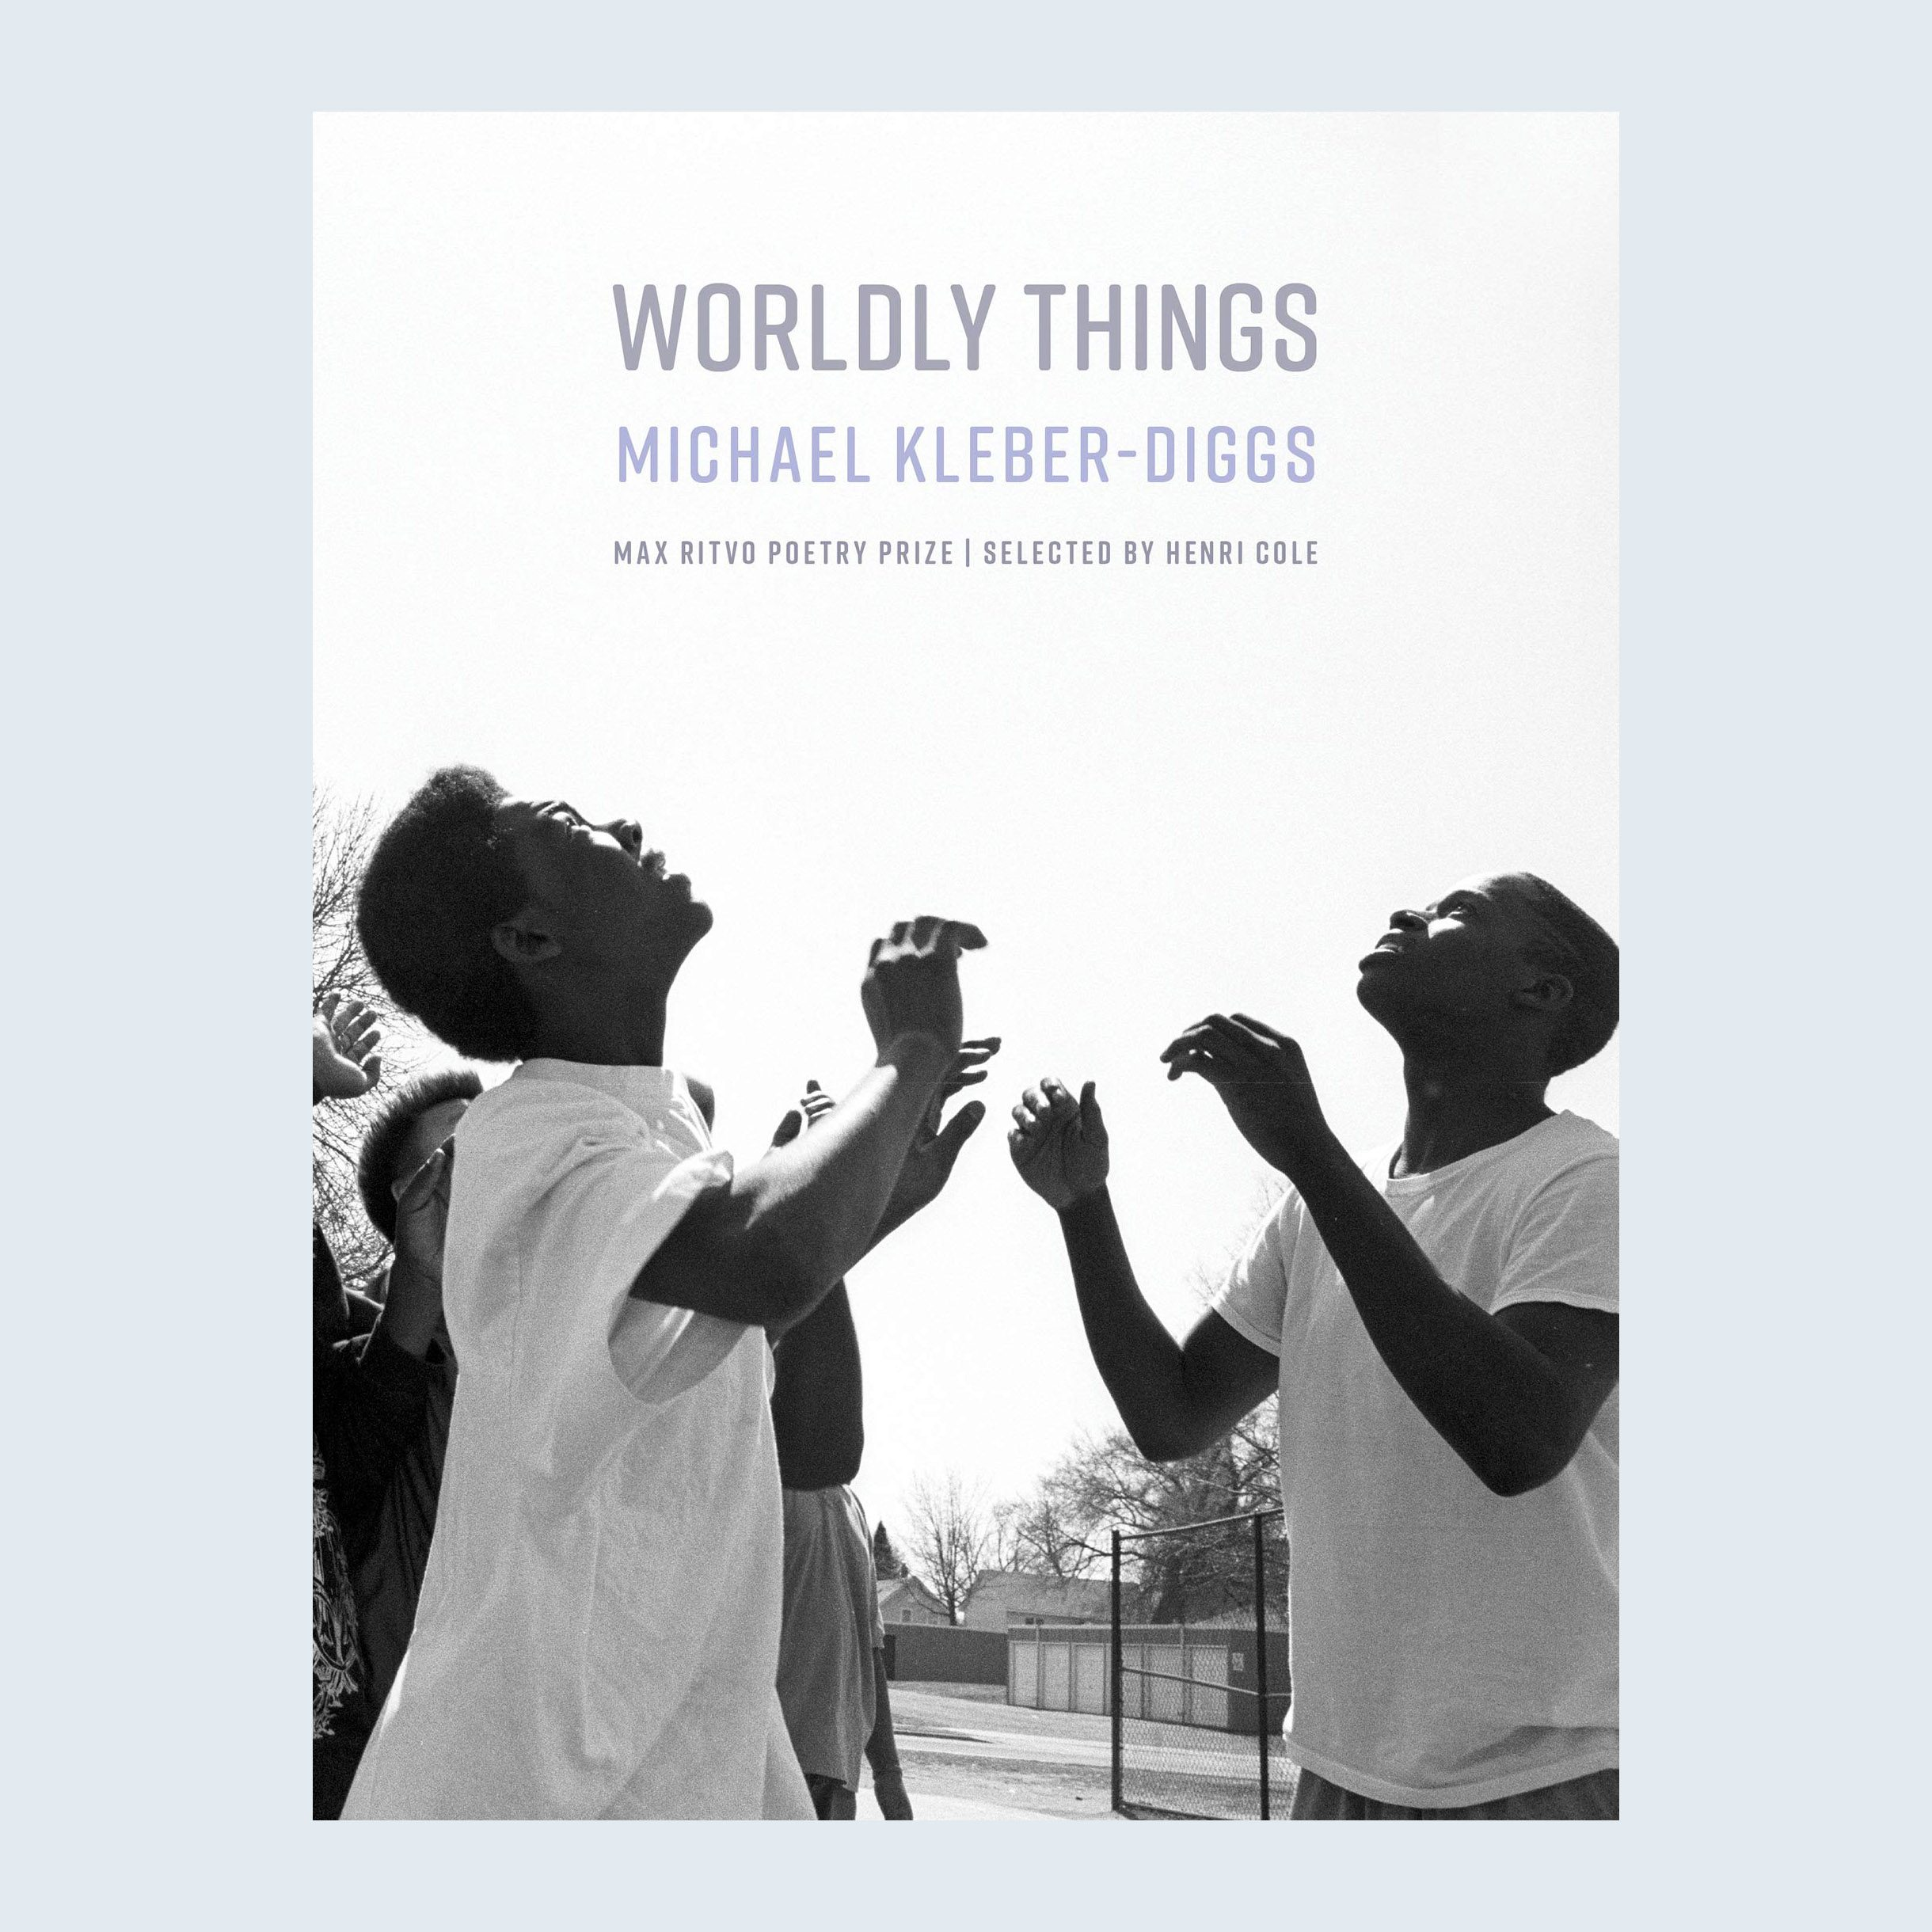 Wordly Things by Michael Kleber-Diggs